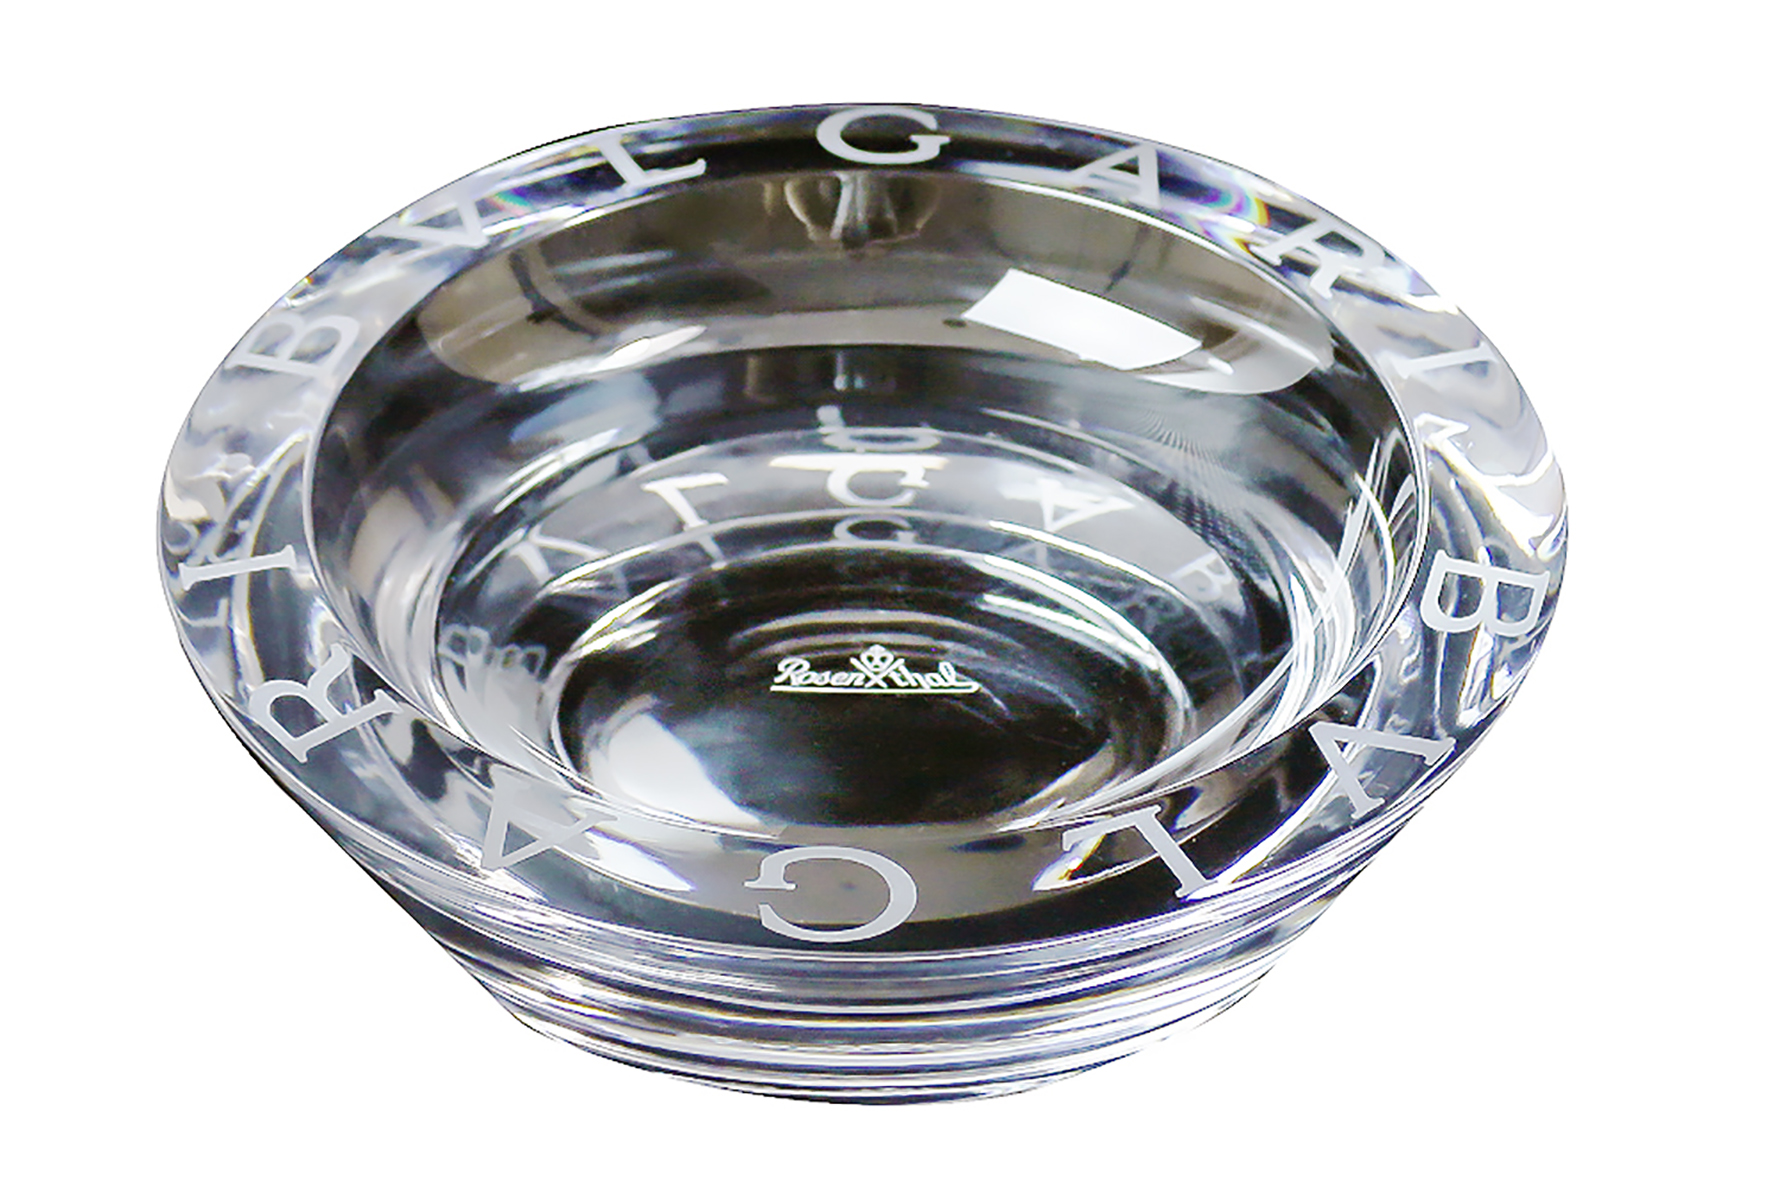 Bvlgari Rosenthal Crystal Large 47504 Round Ashtray